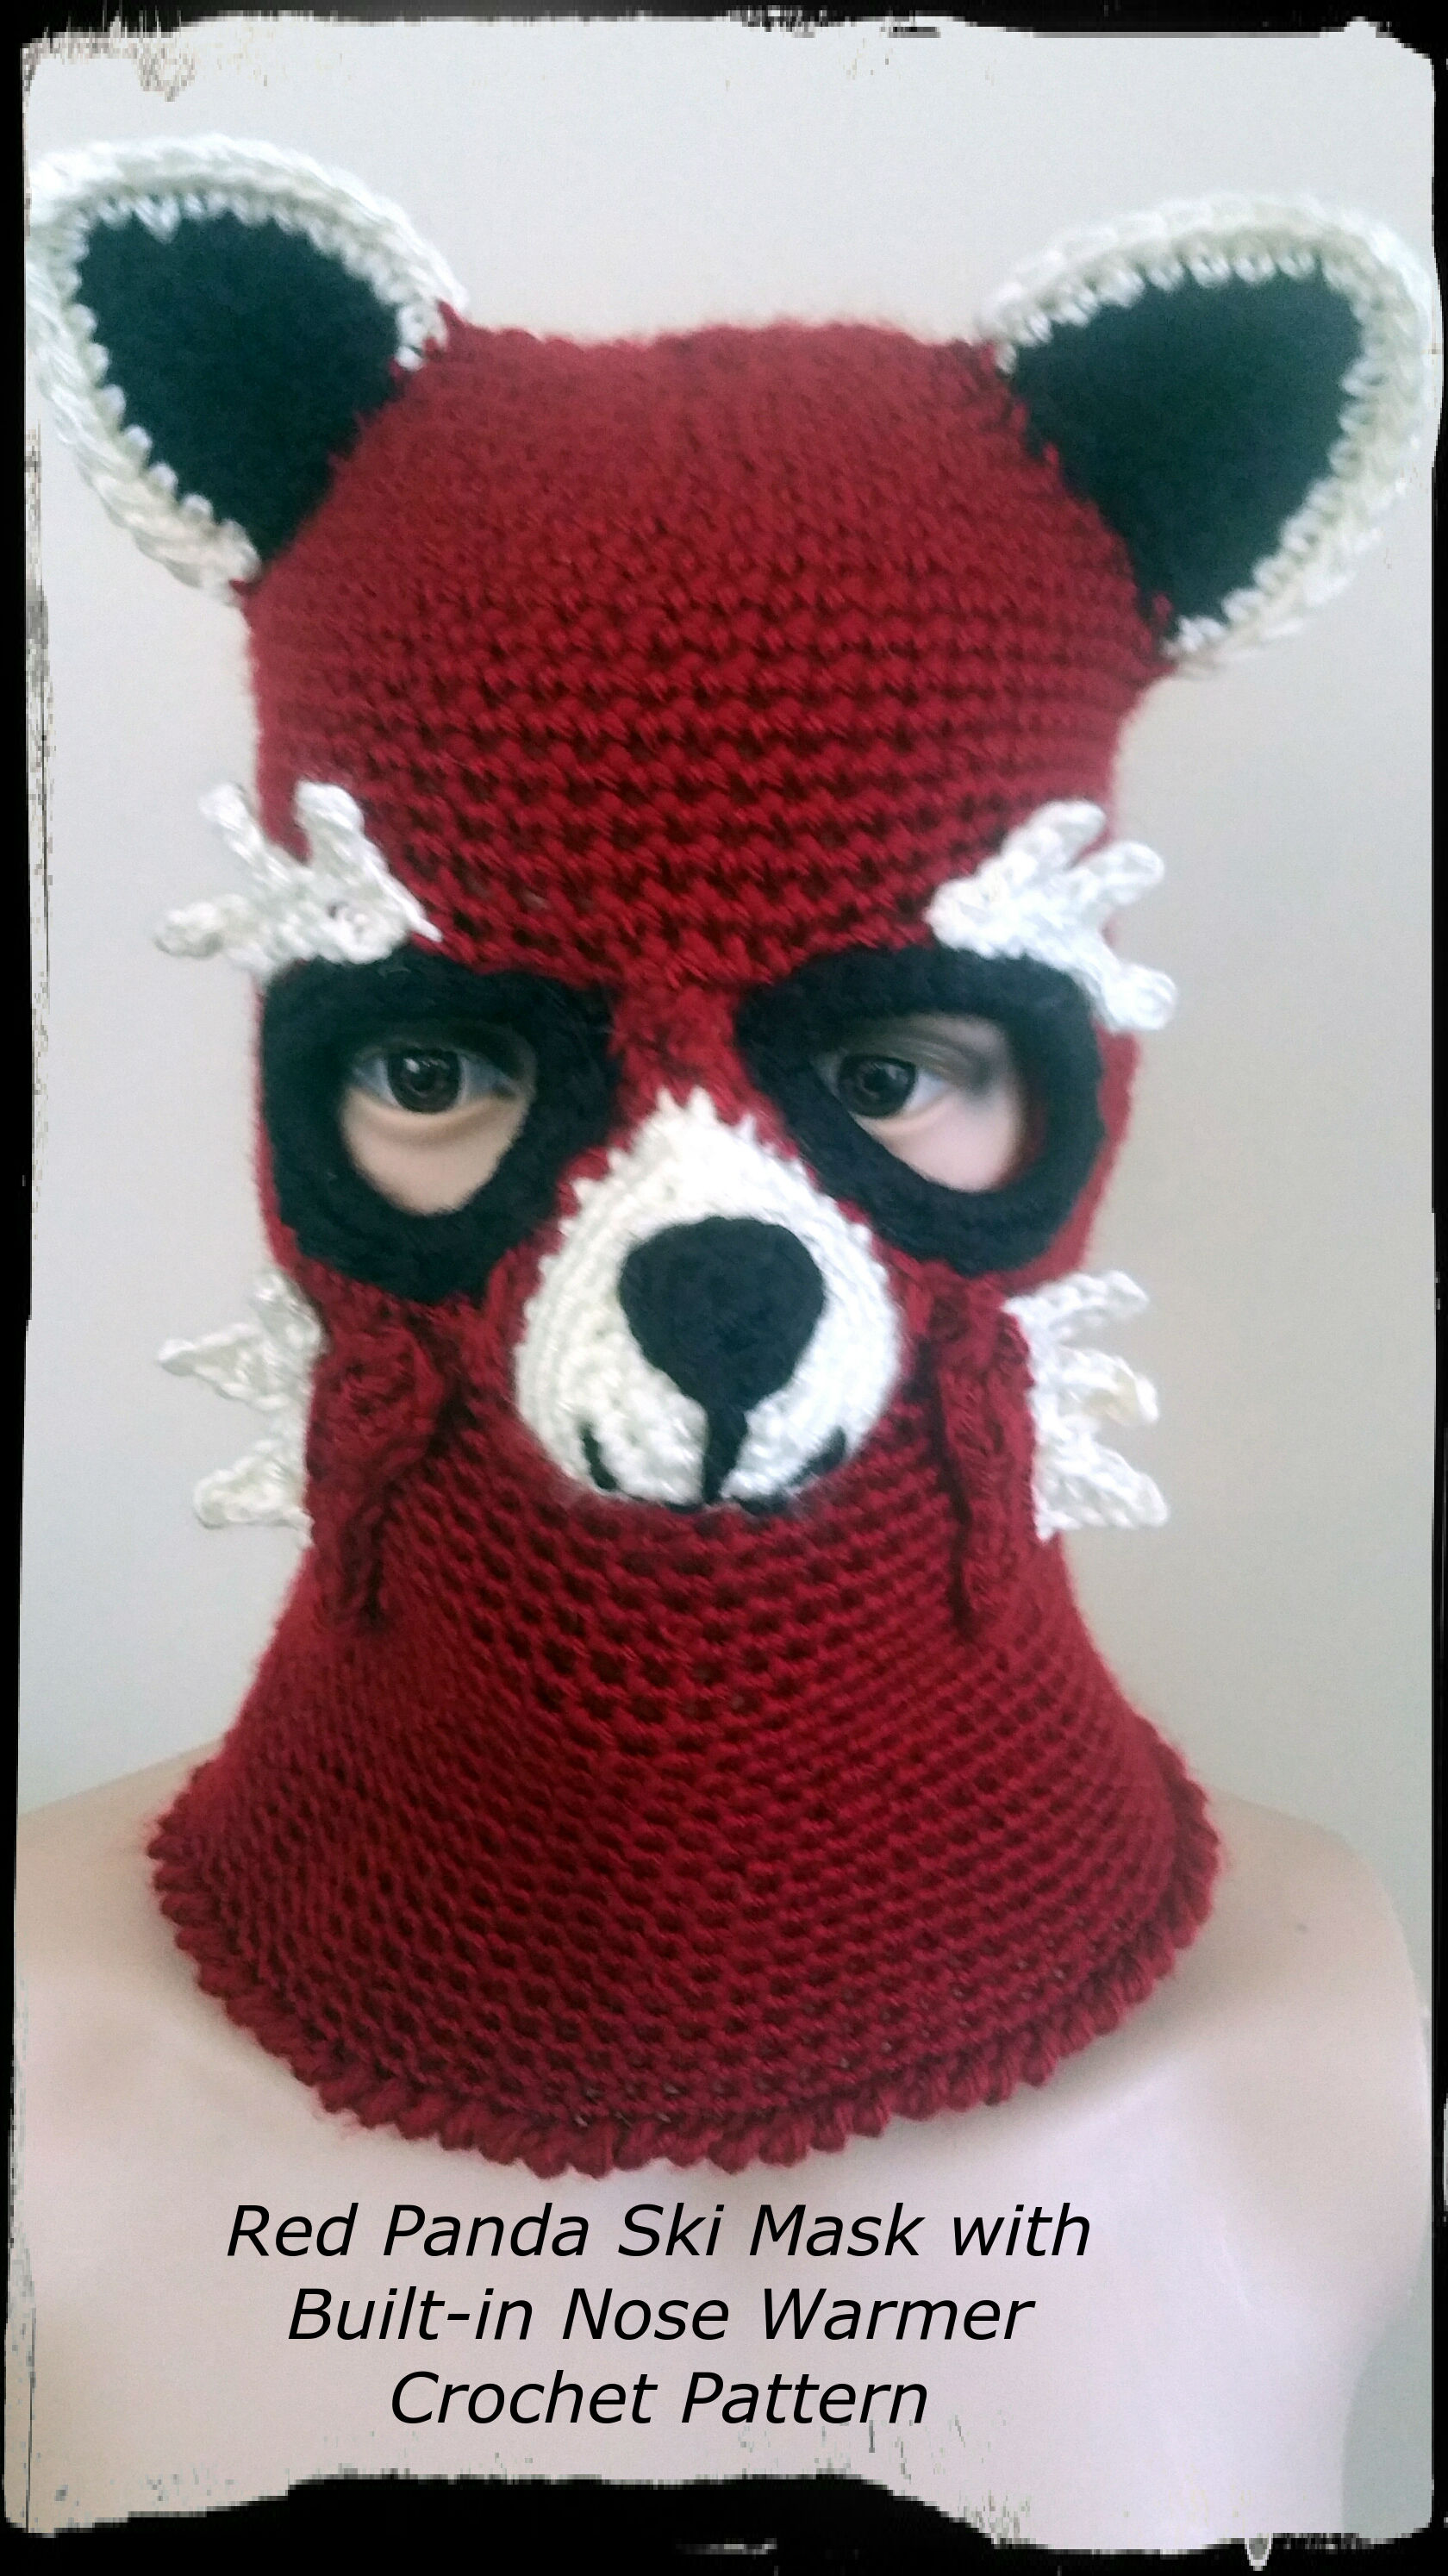 Red Panda Ski Mask Crochet Pattern - PDF